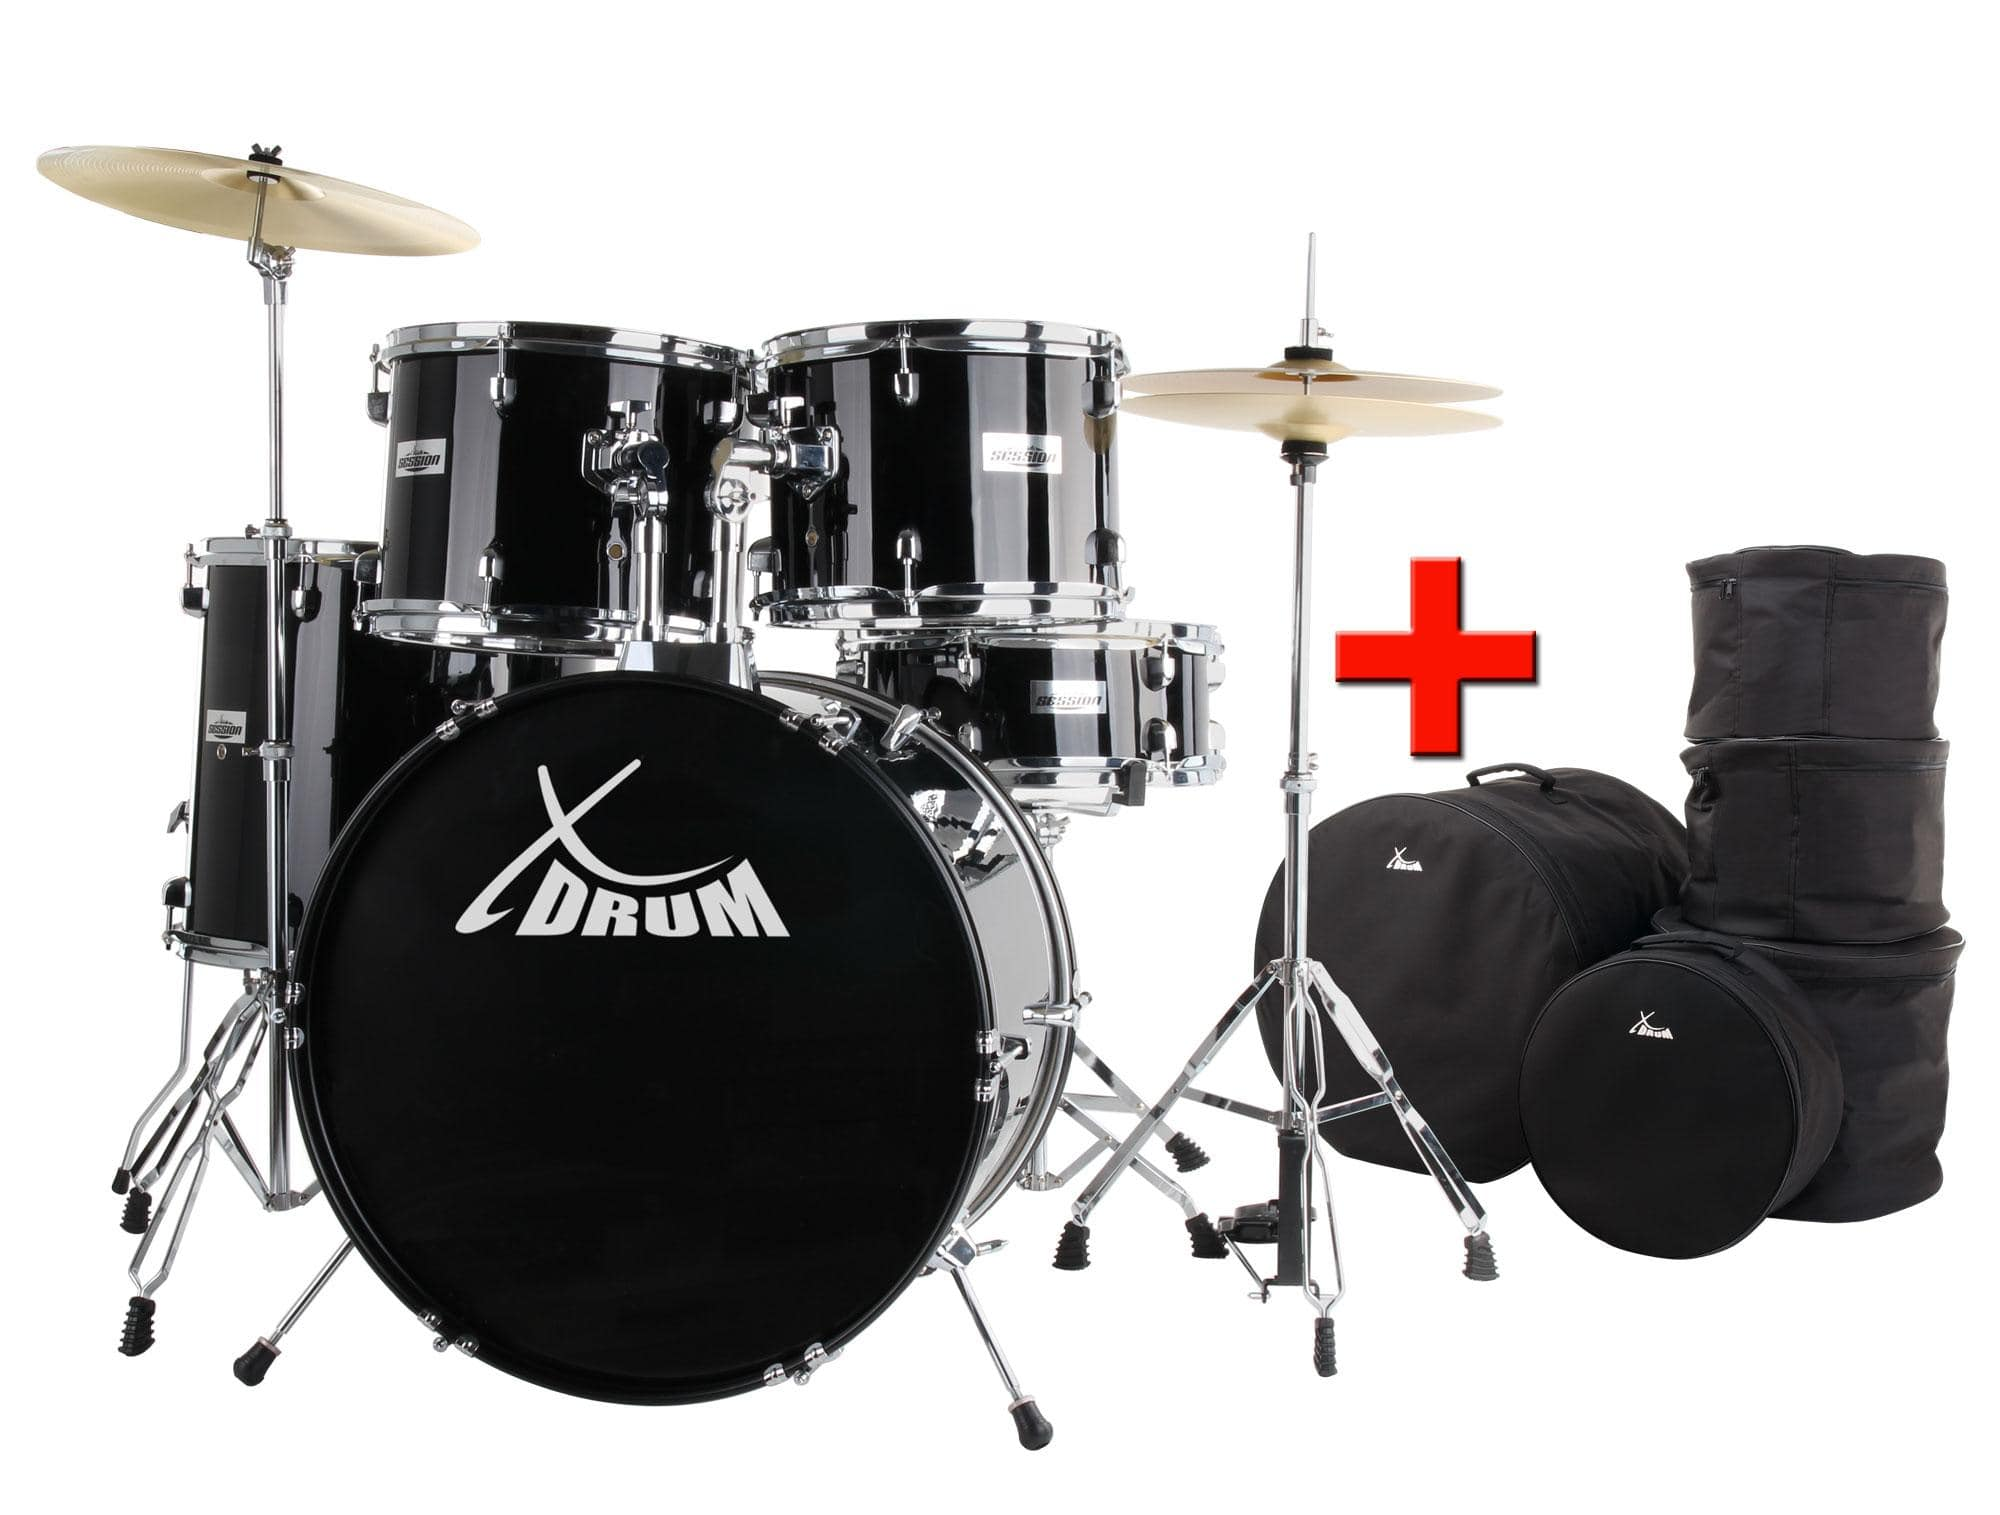 Xdrum Semi Drum 22 Quot Black Saver Set Bags